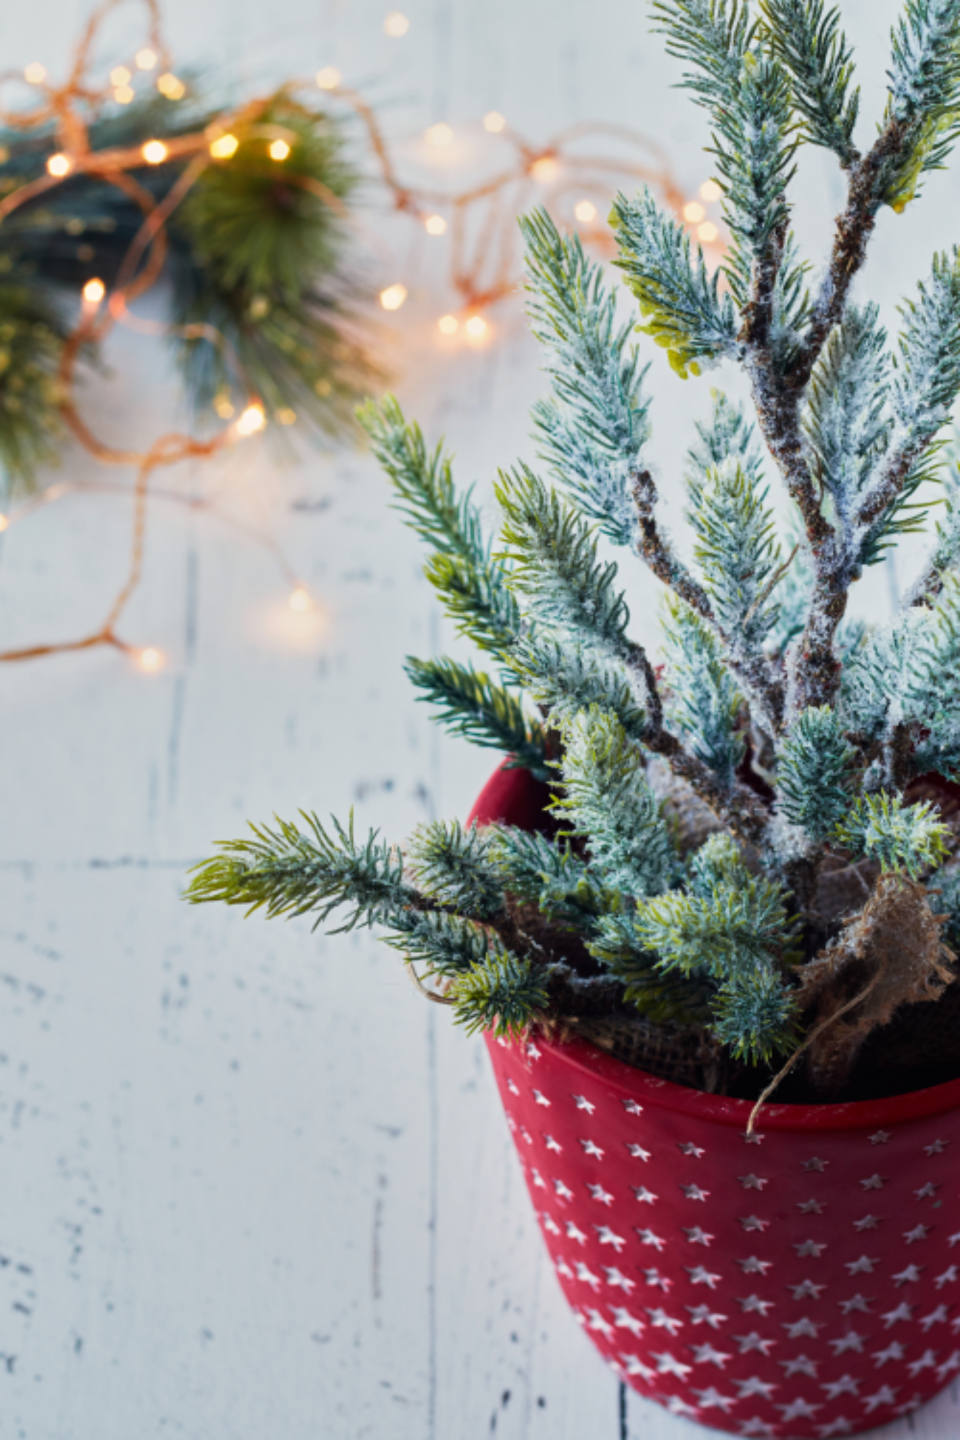 christmas tree background potted small festive plant lights wood holiday decor decoration pine spruce winter xmas nature